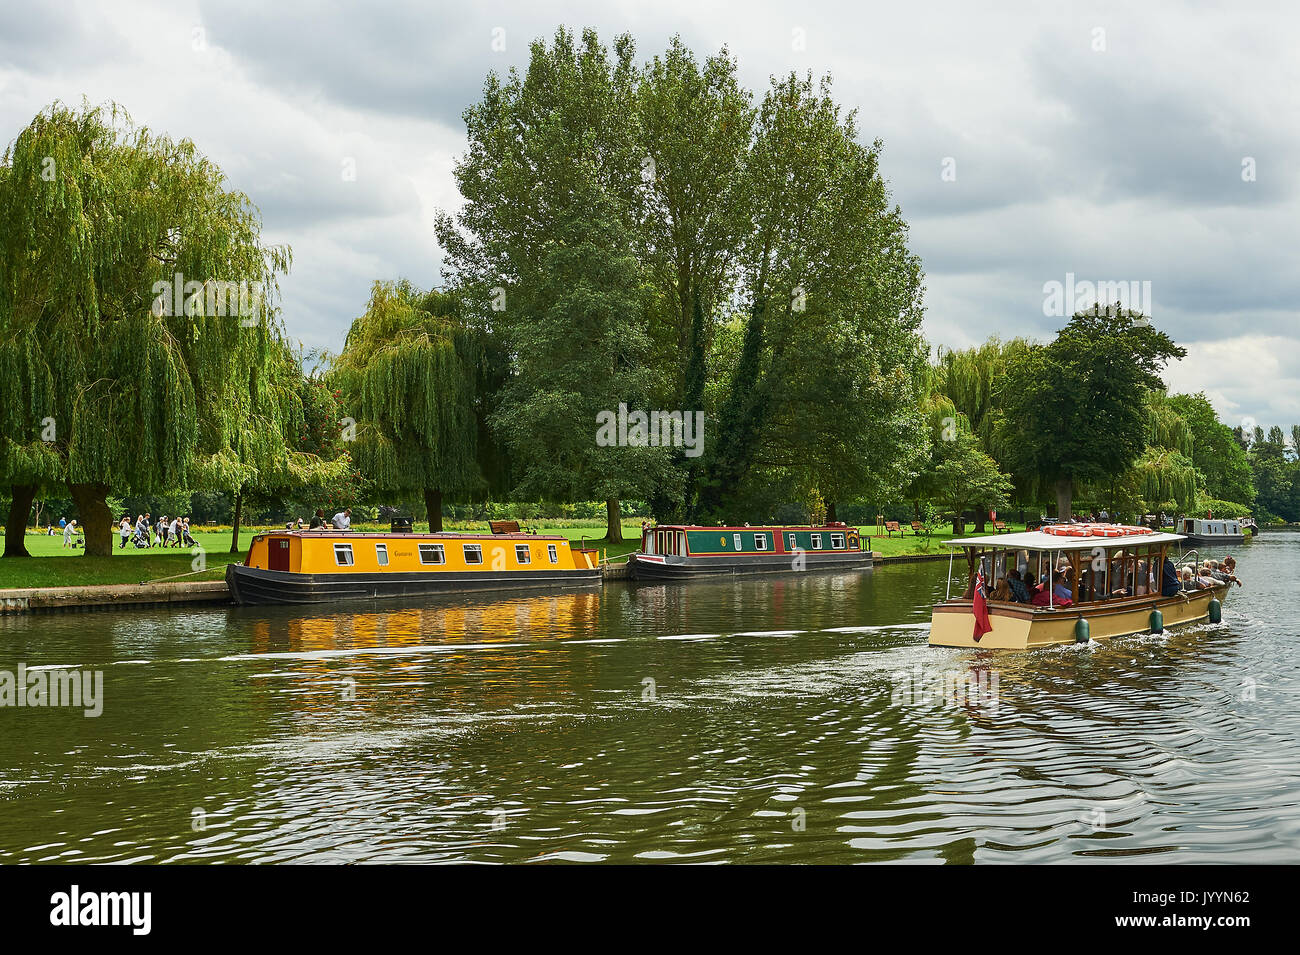 Stratford upon Avon and tourist boats on the River Avon. Stock Photo